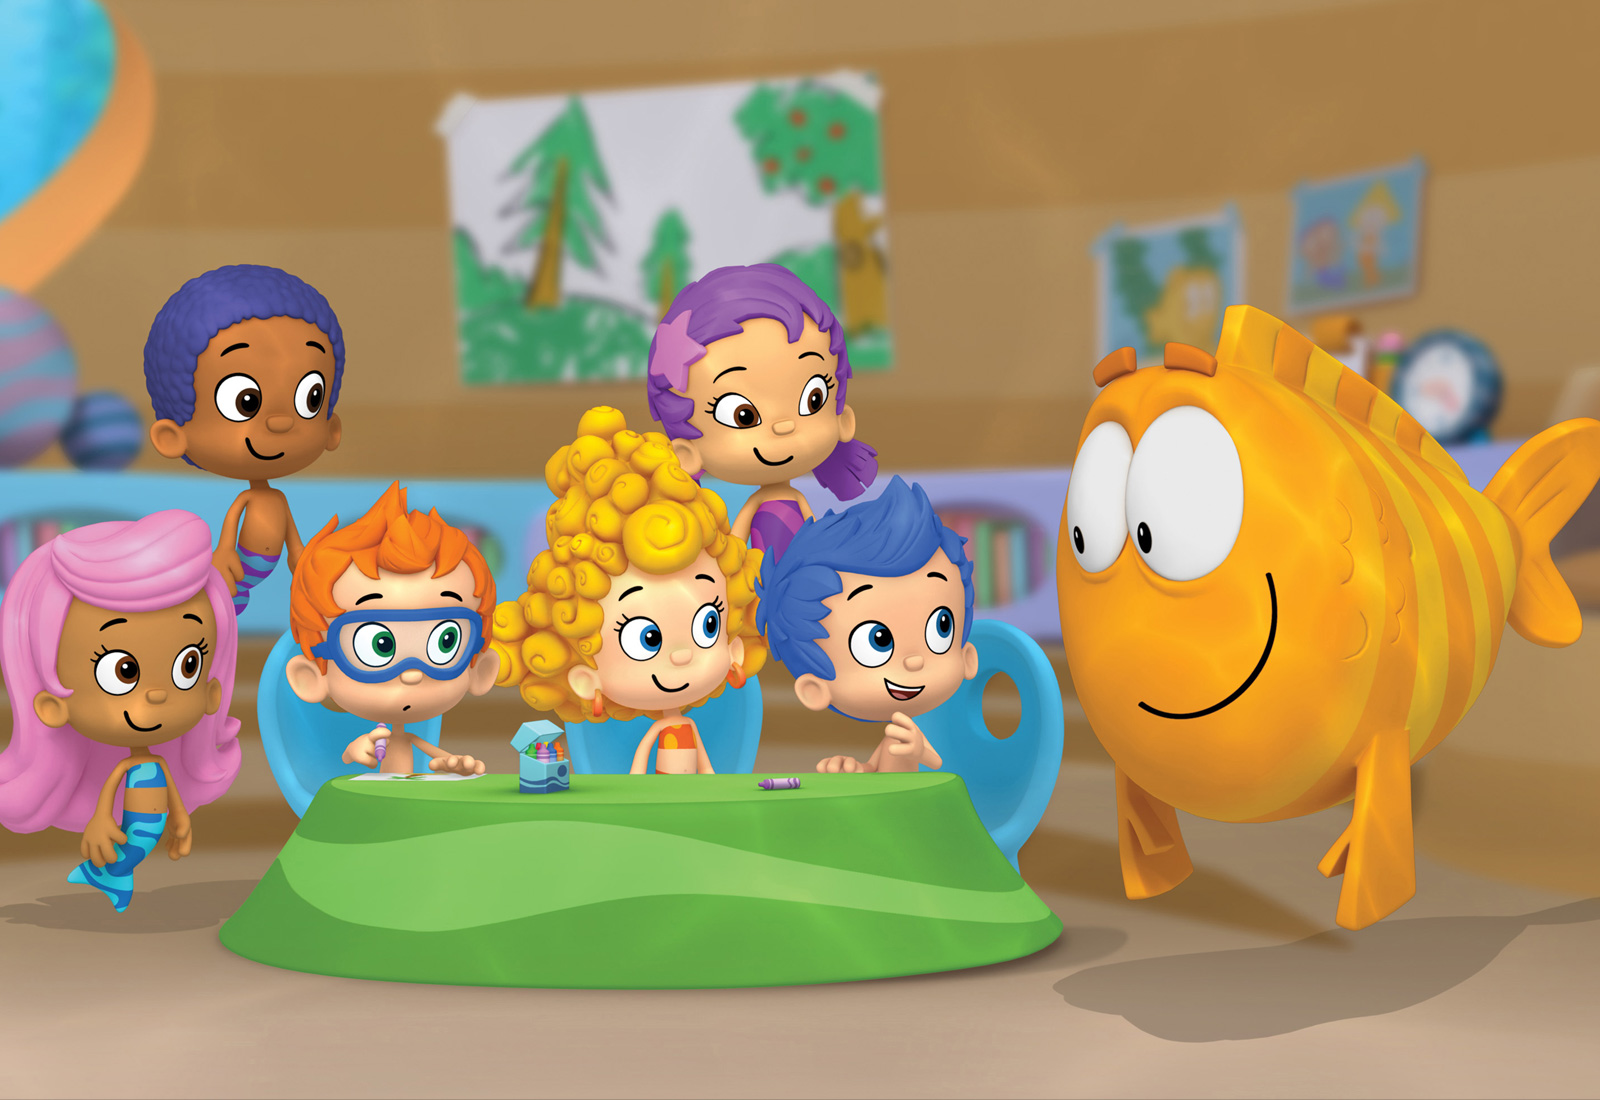 Amazon com: Watch Bubble Guppies Season 4 | Prime Video